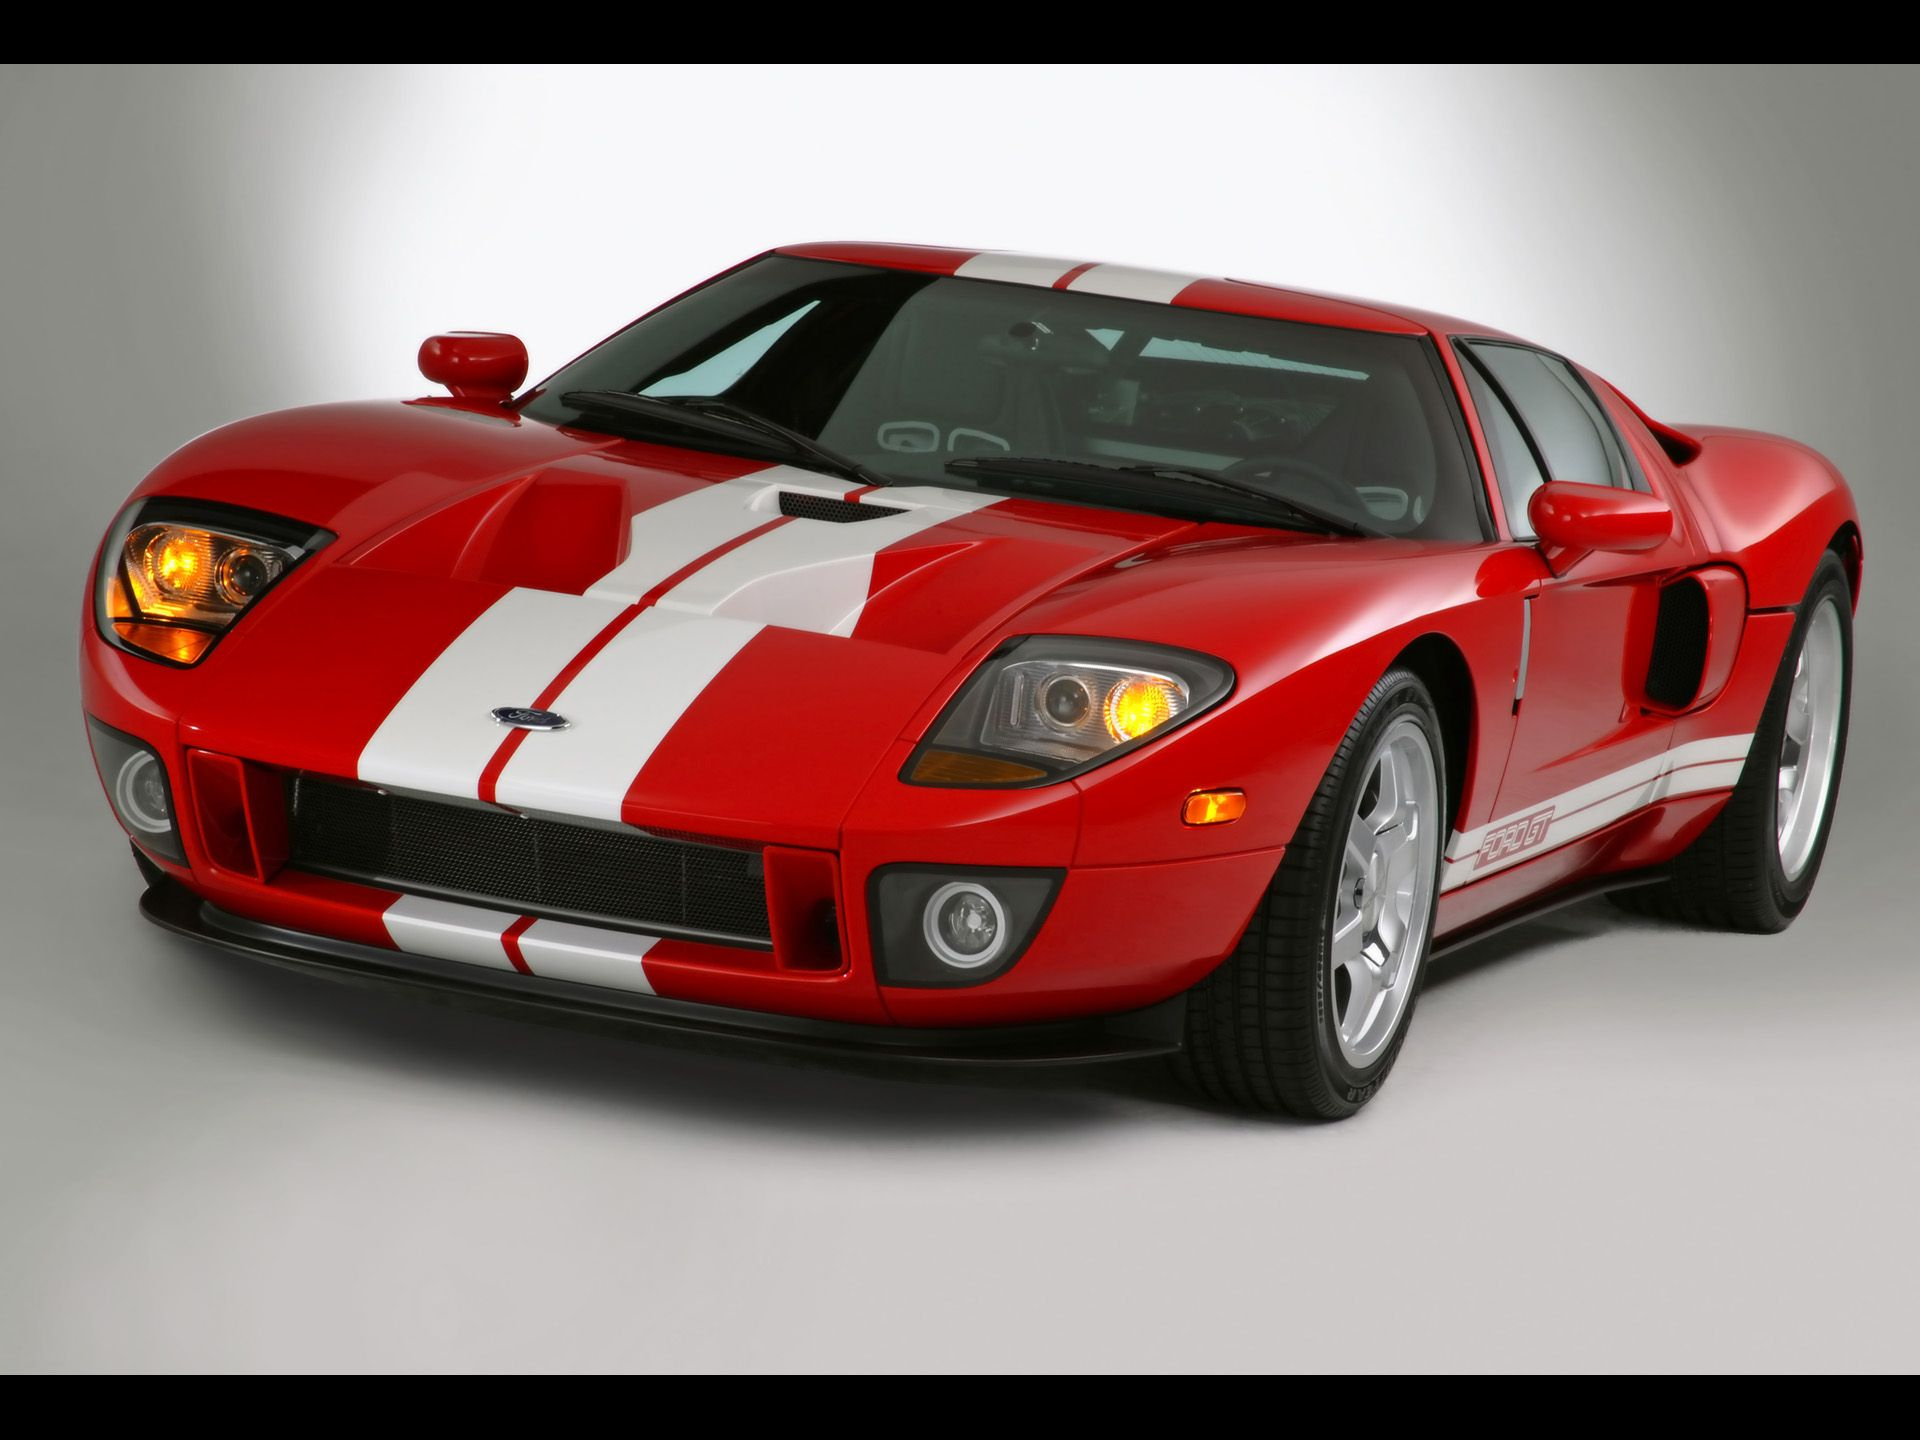 2005 Ford Gt Red Studio 1920x1440 Wallpaper Ford Sports Cars Ford Gt Ford Gt40